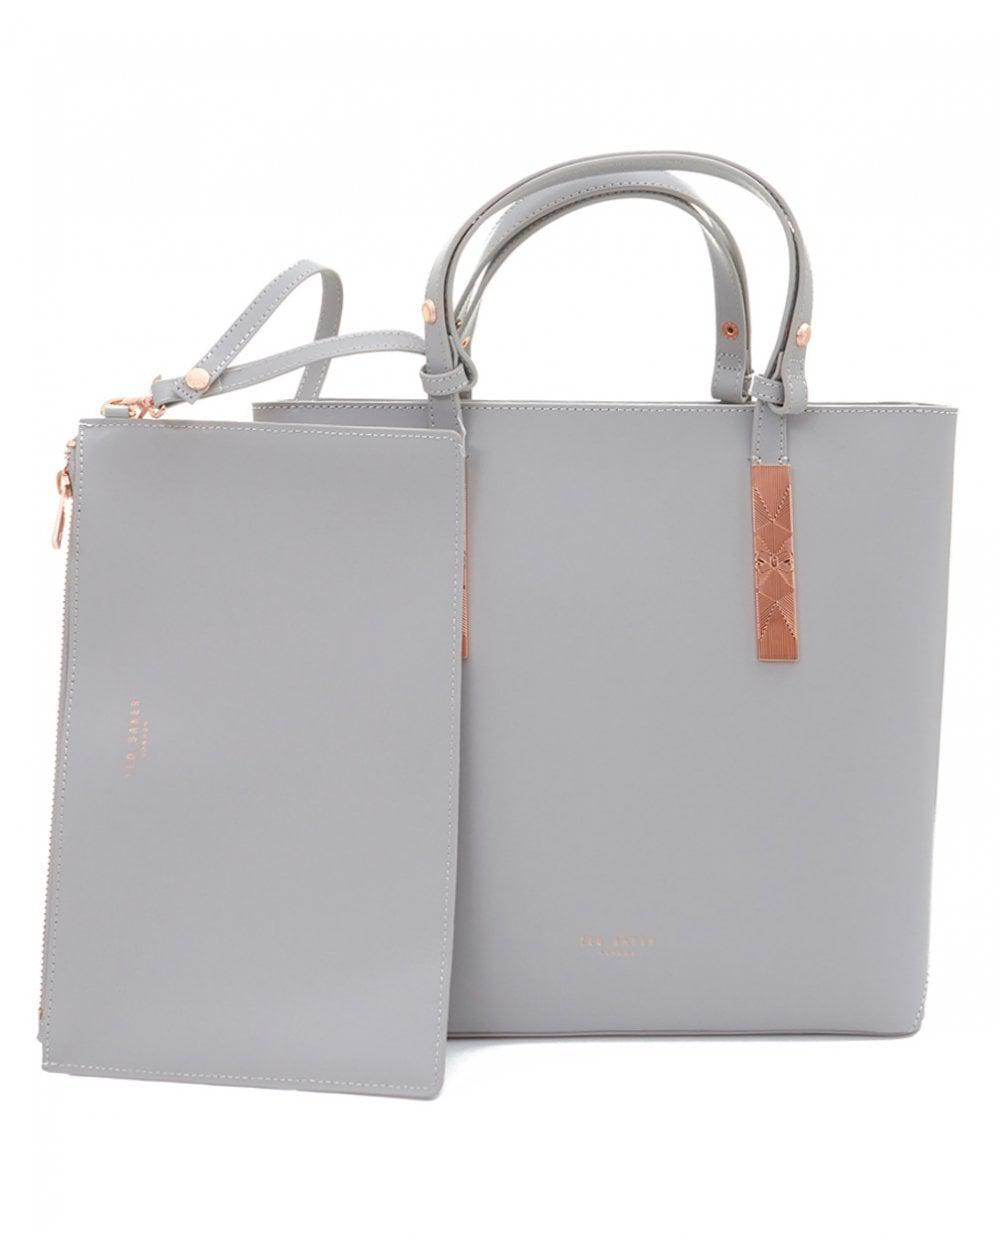 e9e731cac68f Lyst - Ted Baker Adjustable Handle Shopper in Gray